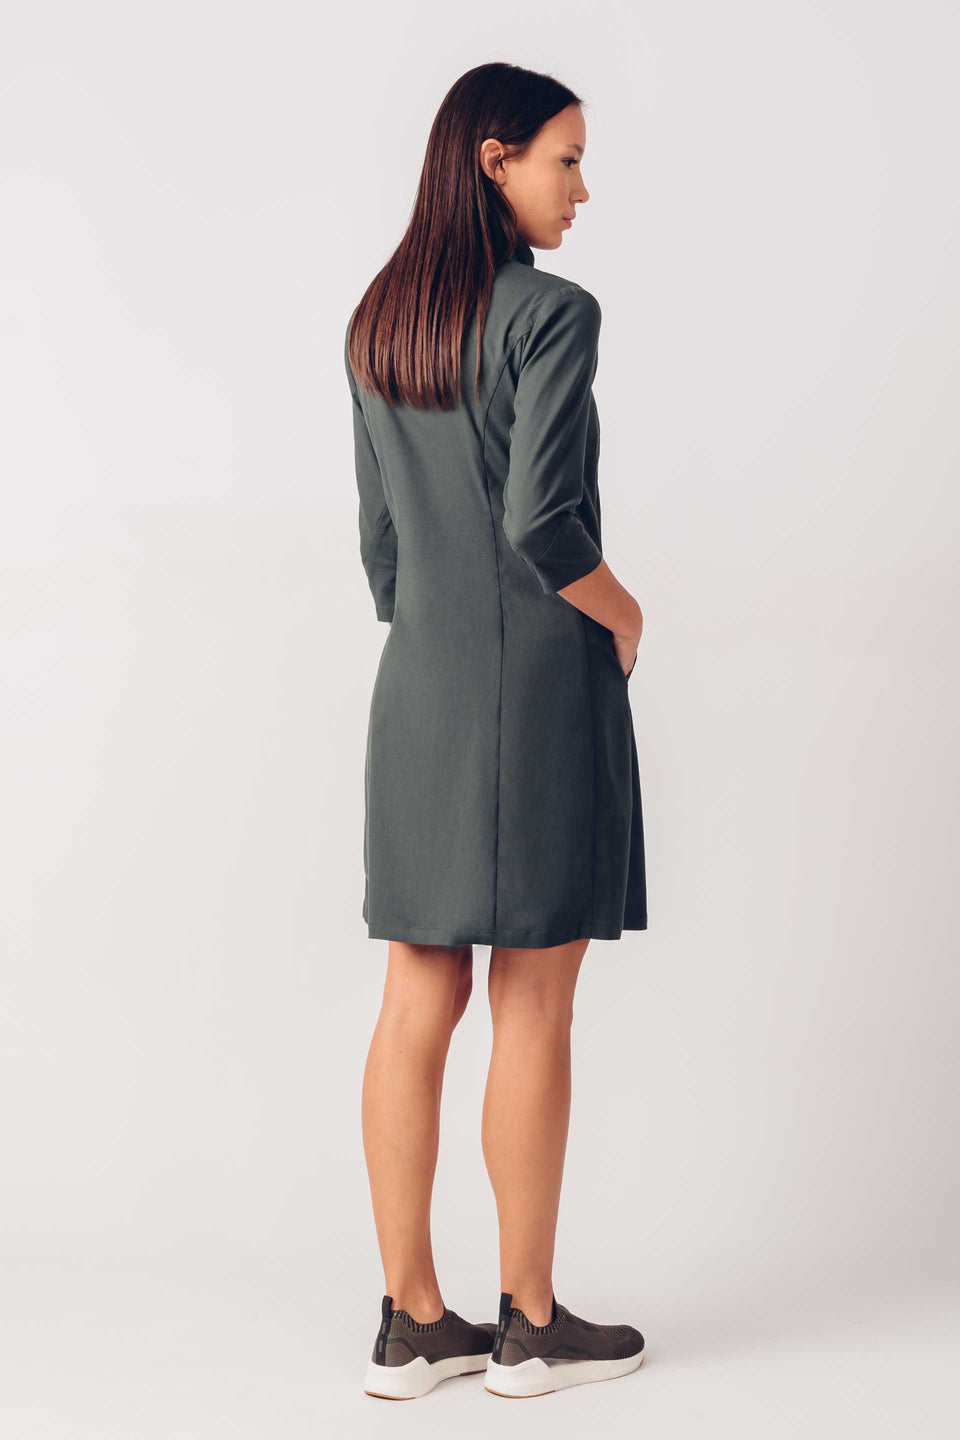 Kora Dress in Dark Green